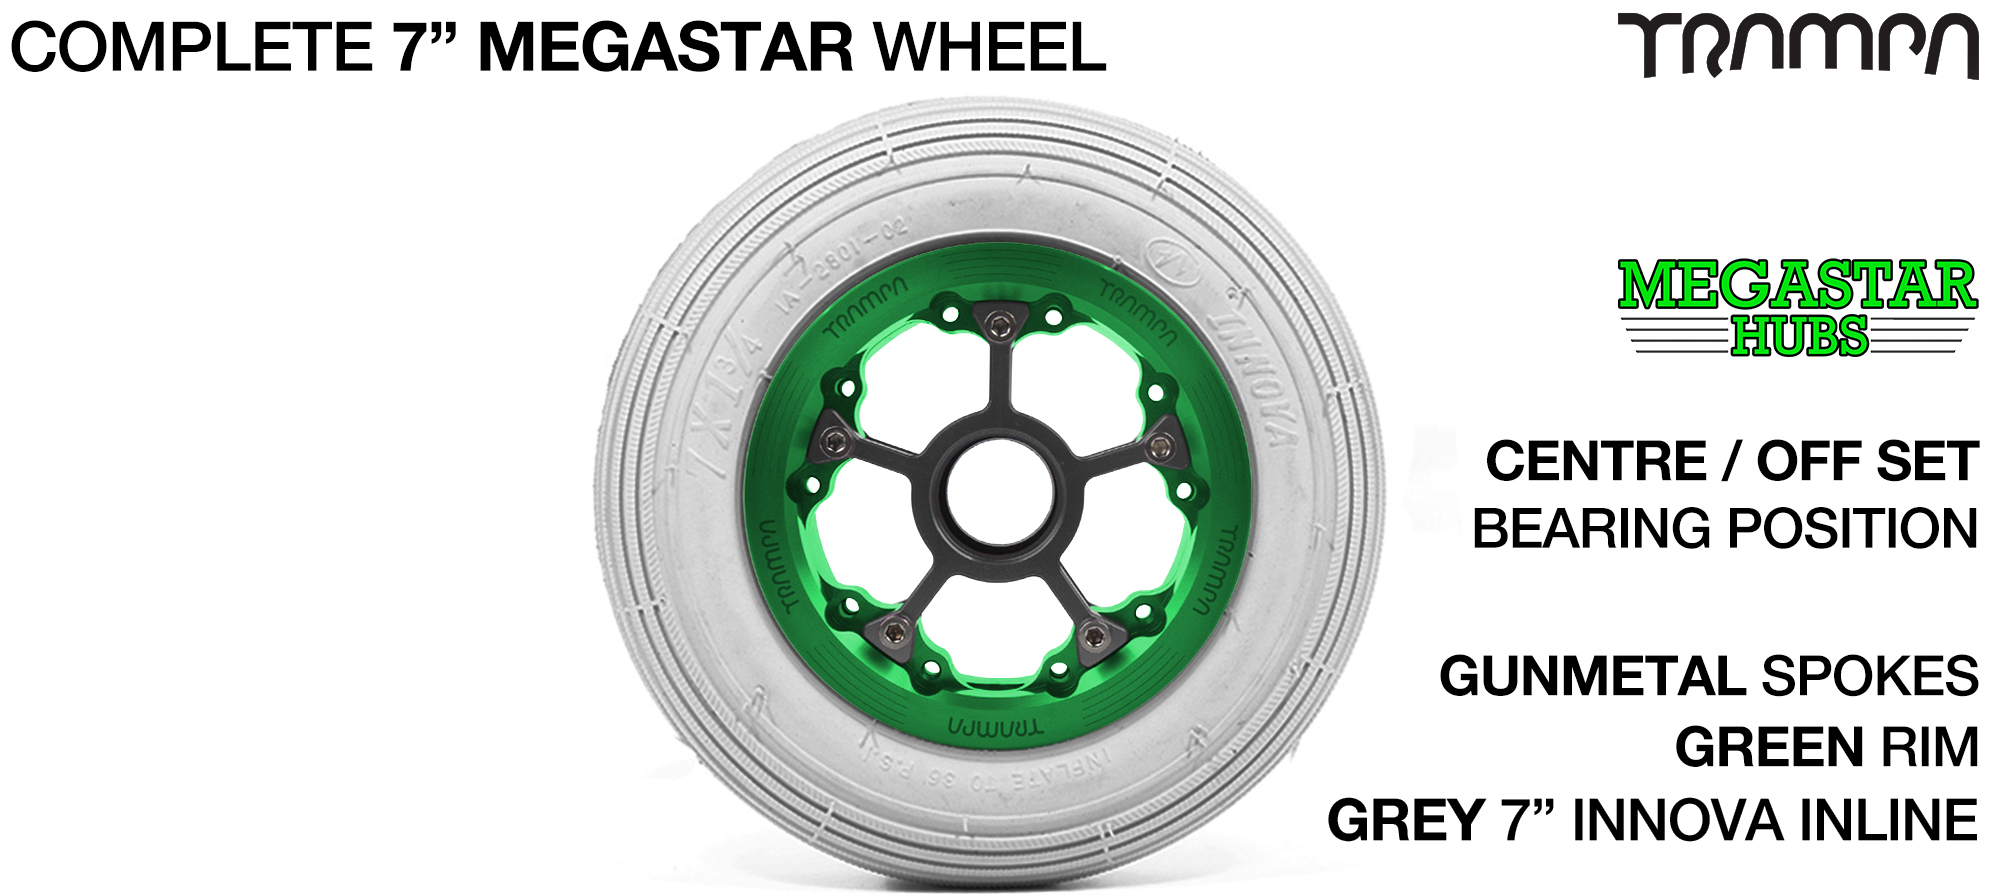 SILVER MEGASTAR Rims with GUNMETAL Spokes & 7 Inch Tyres